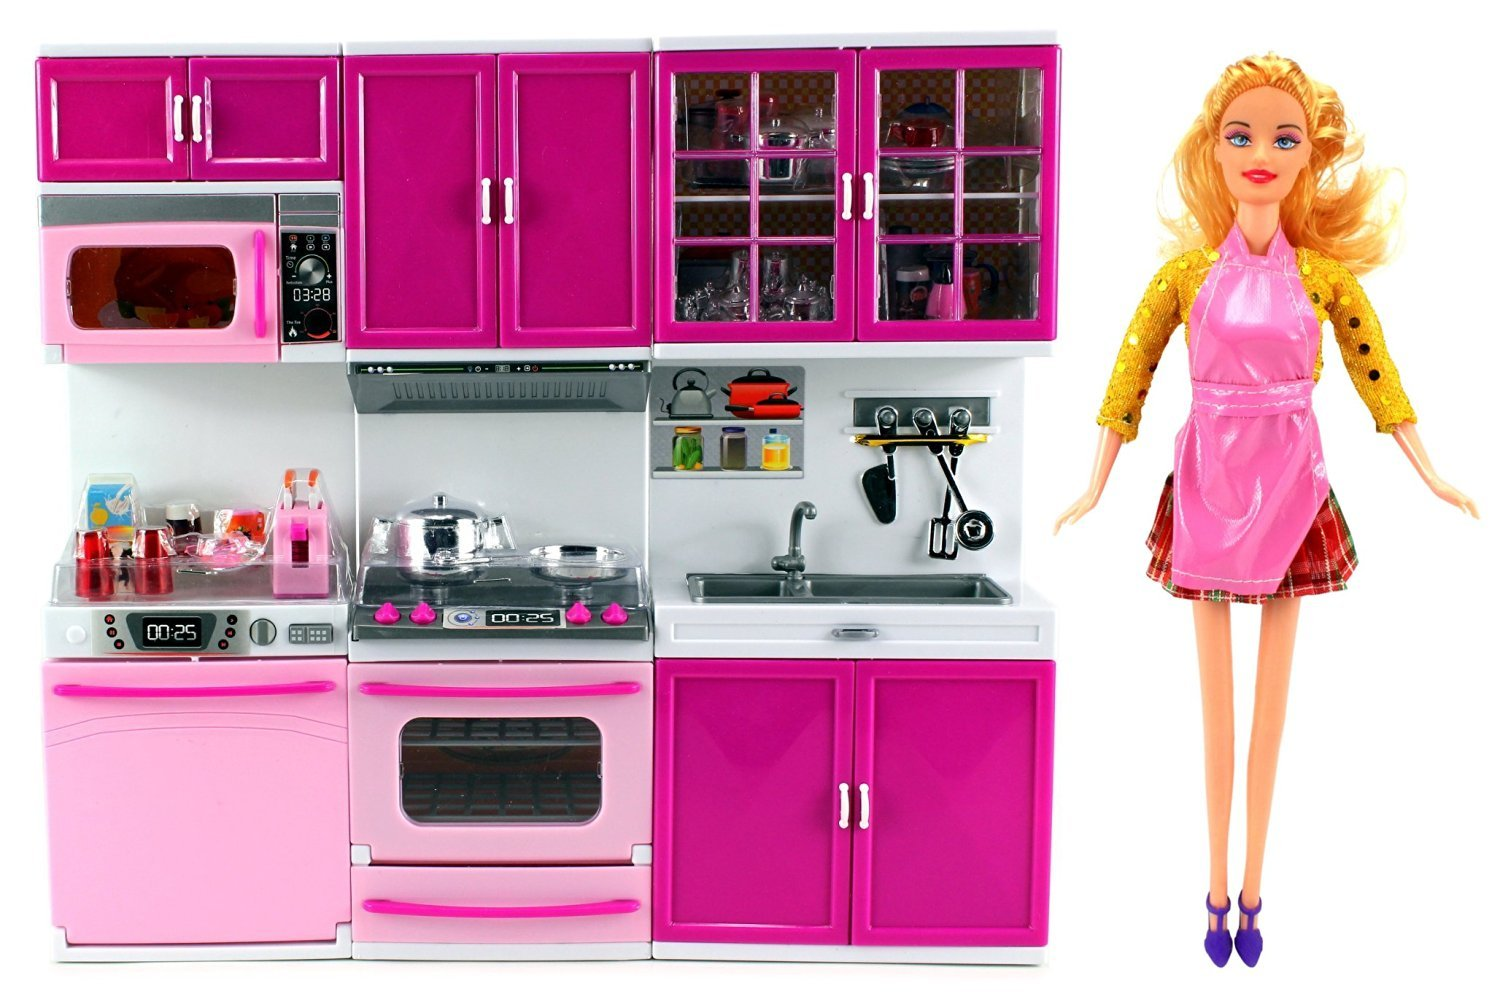 hasta un 65% de descuento My Happy Kitchen Kitchen Kitchen Dishwasher Oven Sink Battery Operated Toy Doll Kitchen Playset w/ Doll, Lights, Sounds, Perfect for Use with 11-12 Tall Dolls by Velocity Toys  60% de descuento